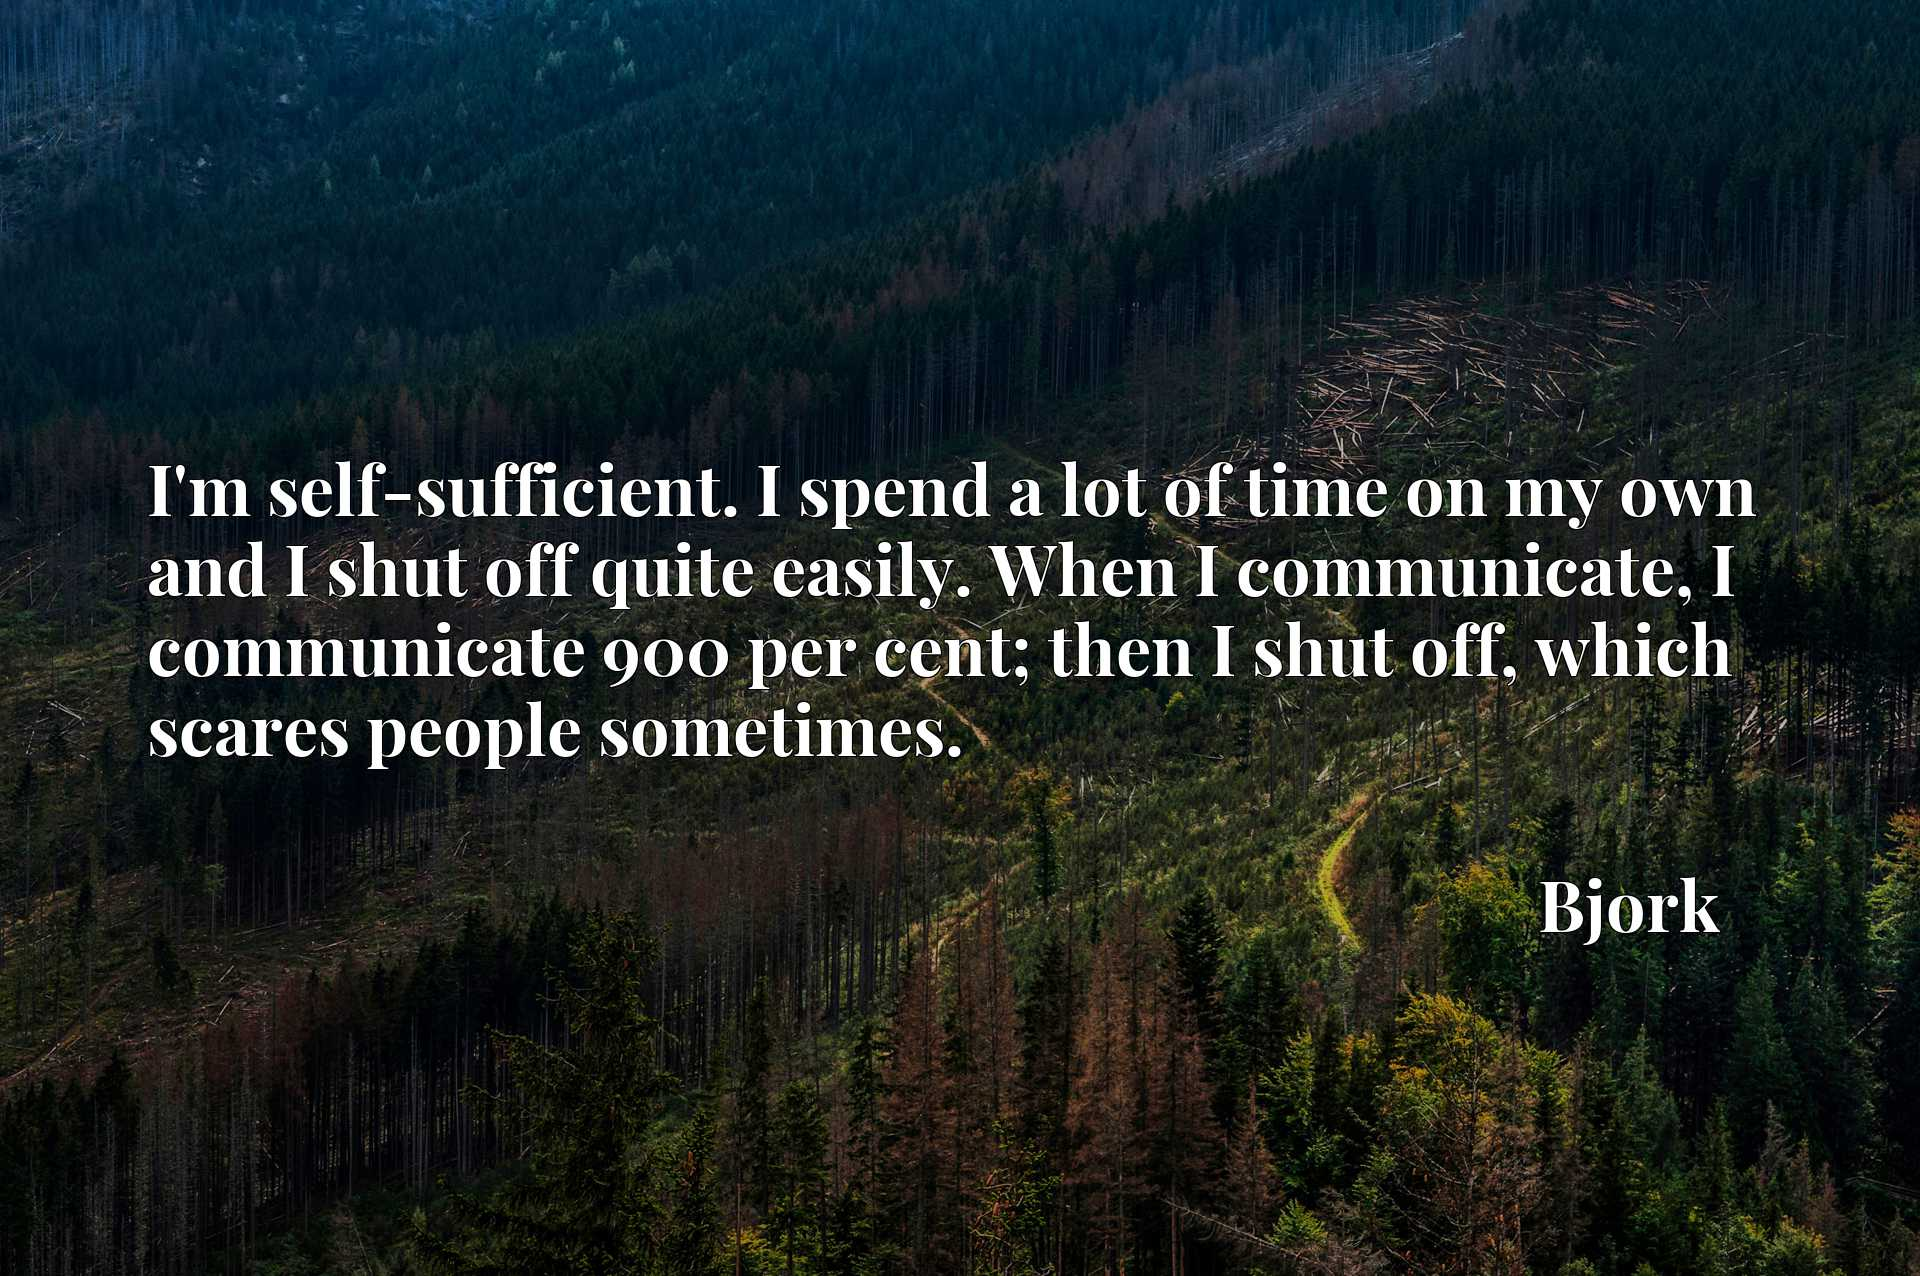 I'm self-sufficient. I spend a lot of time on my own and I shut off quite easily. When I communicate, I communicate 900 per cent; then I shut off, which scares people sometimes.